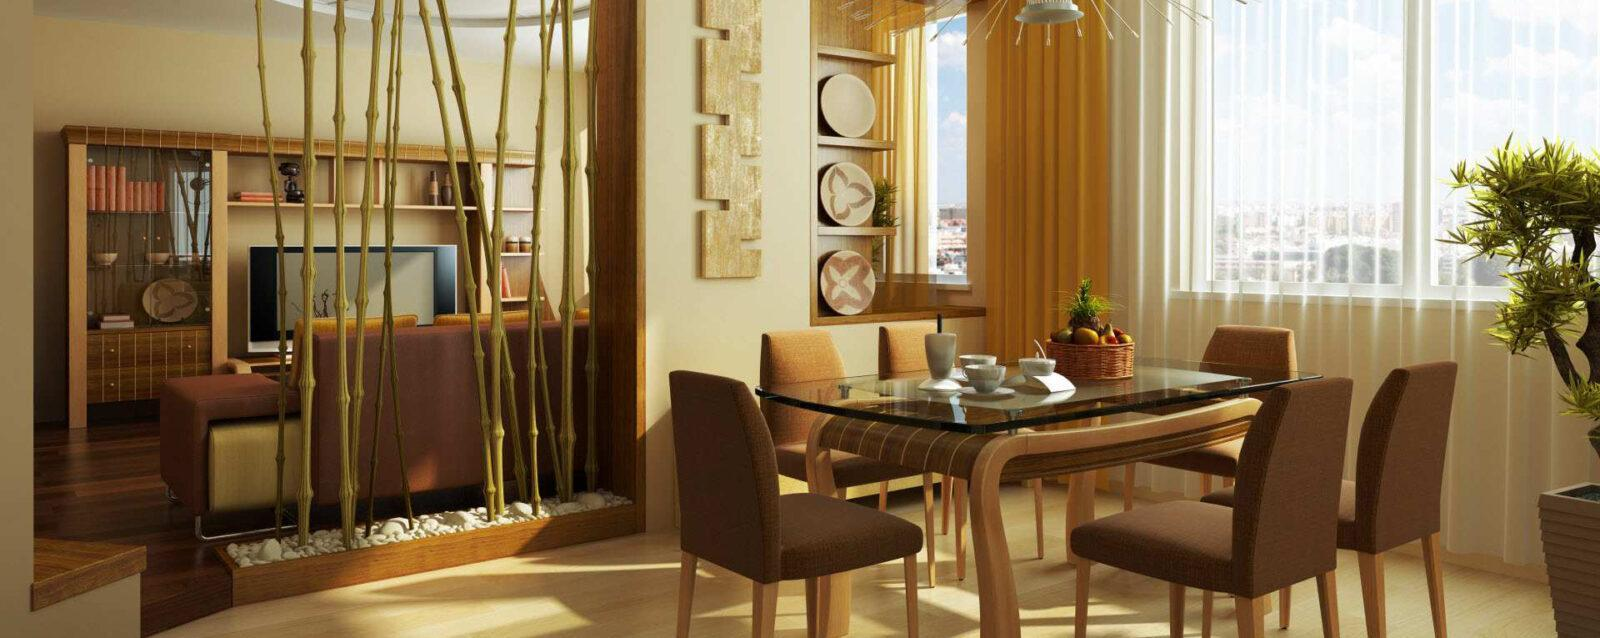 Images of dining room decor